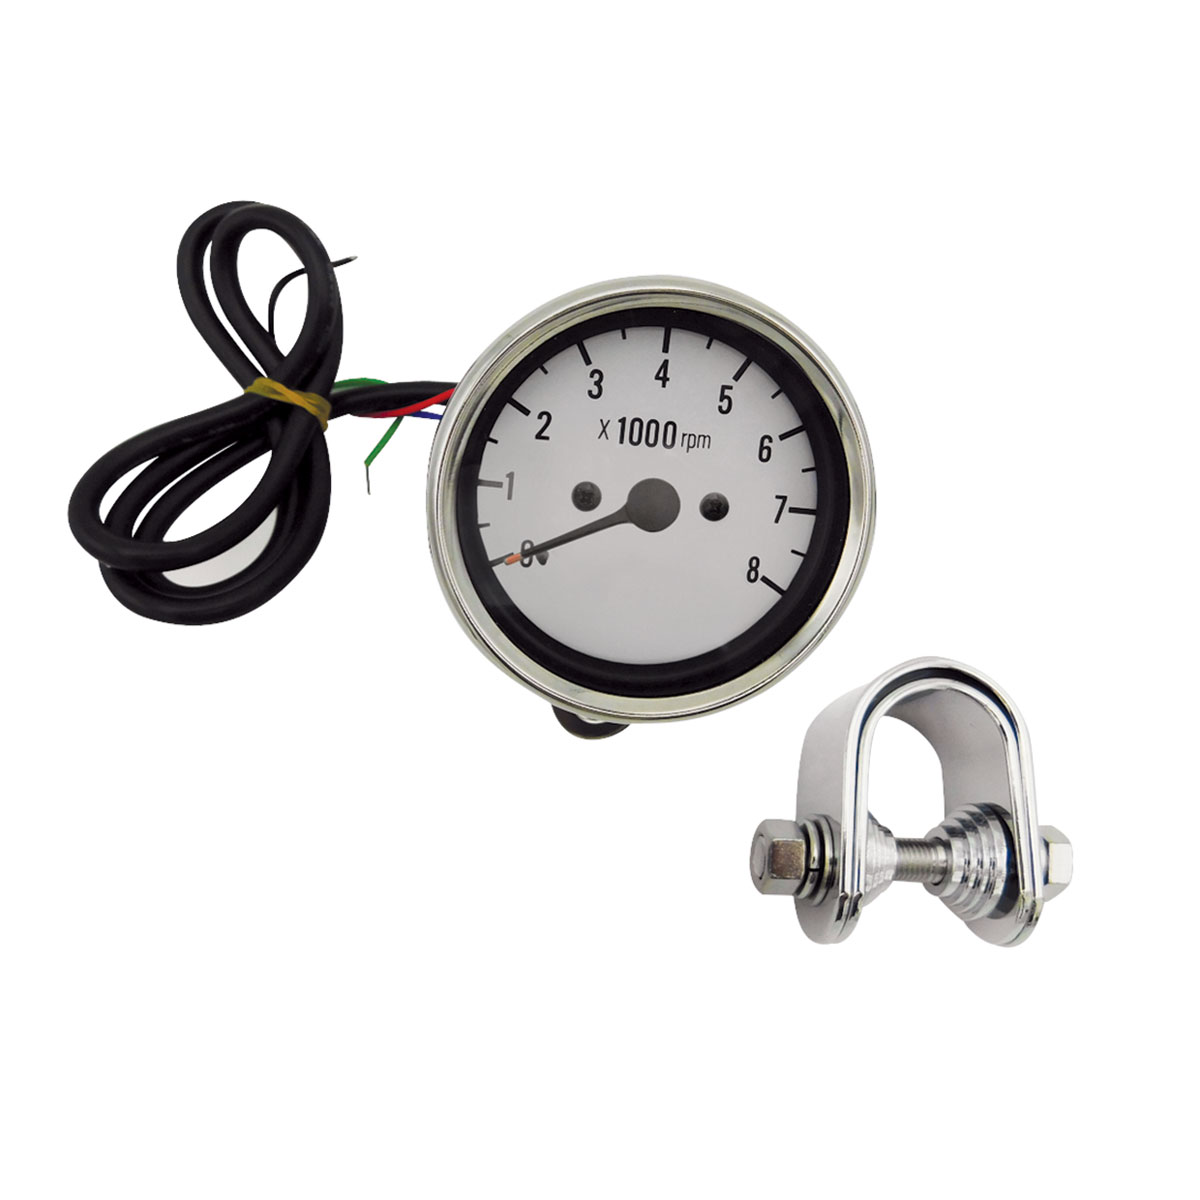 Dash & Speedometers J&p Cycles Tach Harley Wiring 67152 95